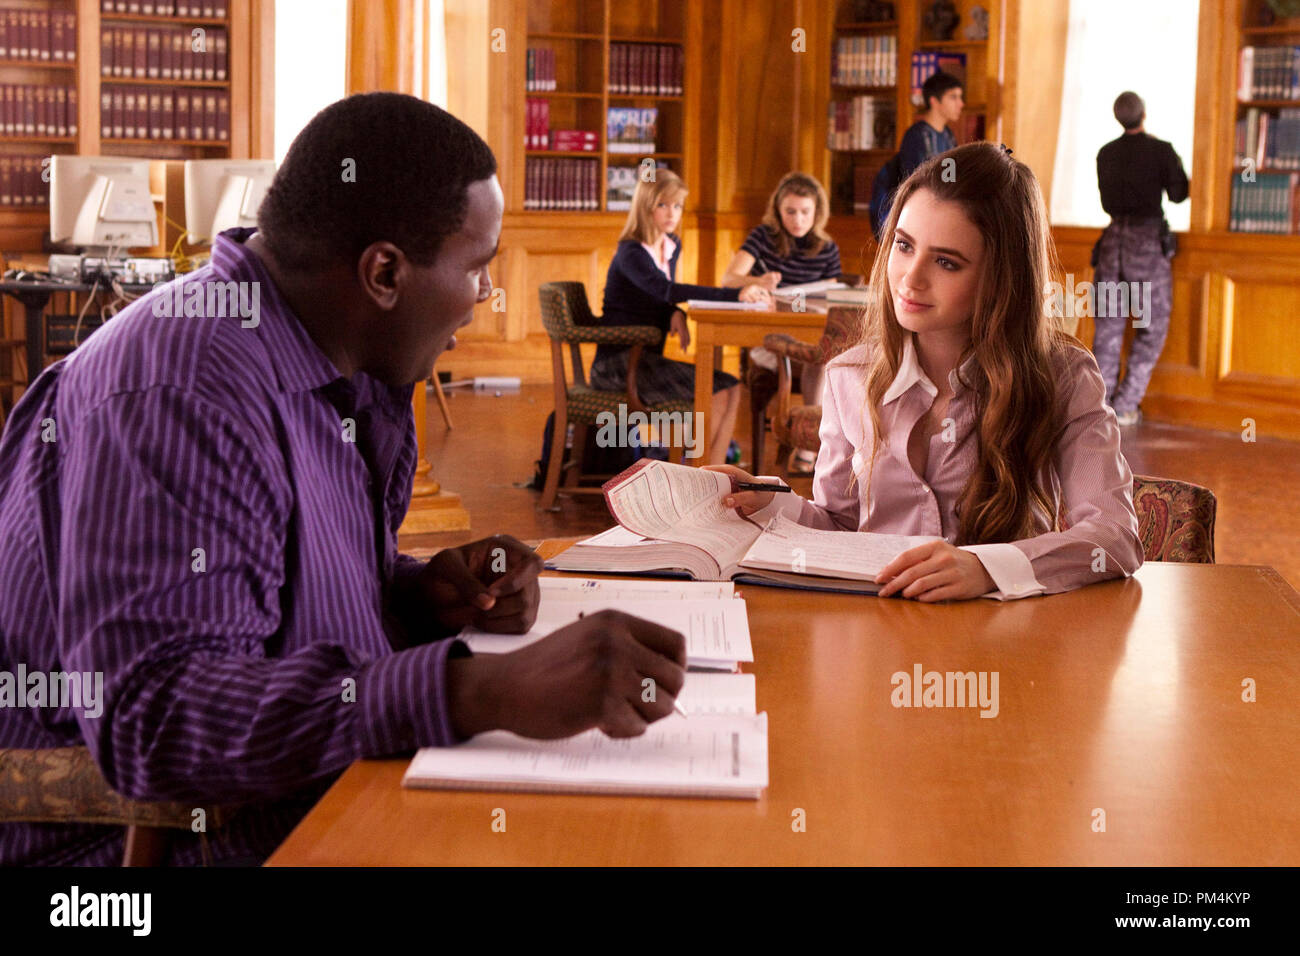 """QUINTON AARON as Michael Oher and LILY COLLINS as Collins in Alcon Entertainment's drama """"The Blind Side,"""" a Warner Bros. Pictures release. - Stock Image"""